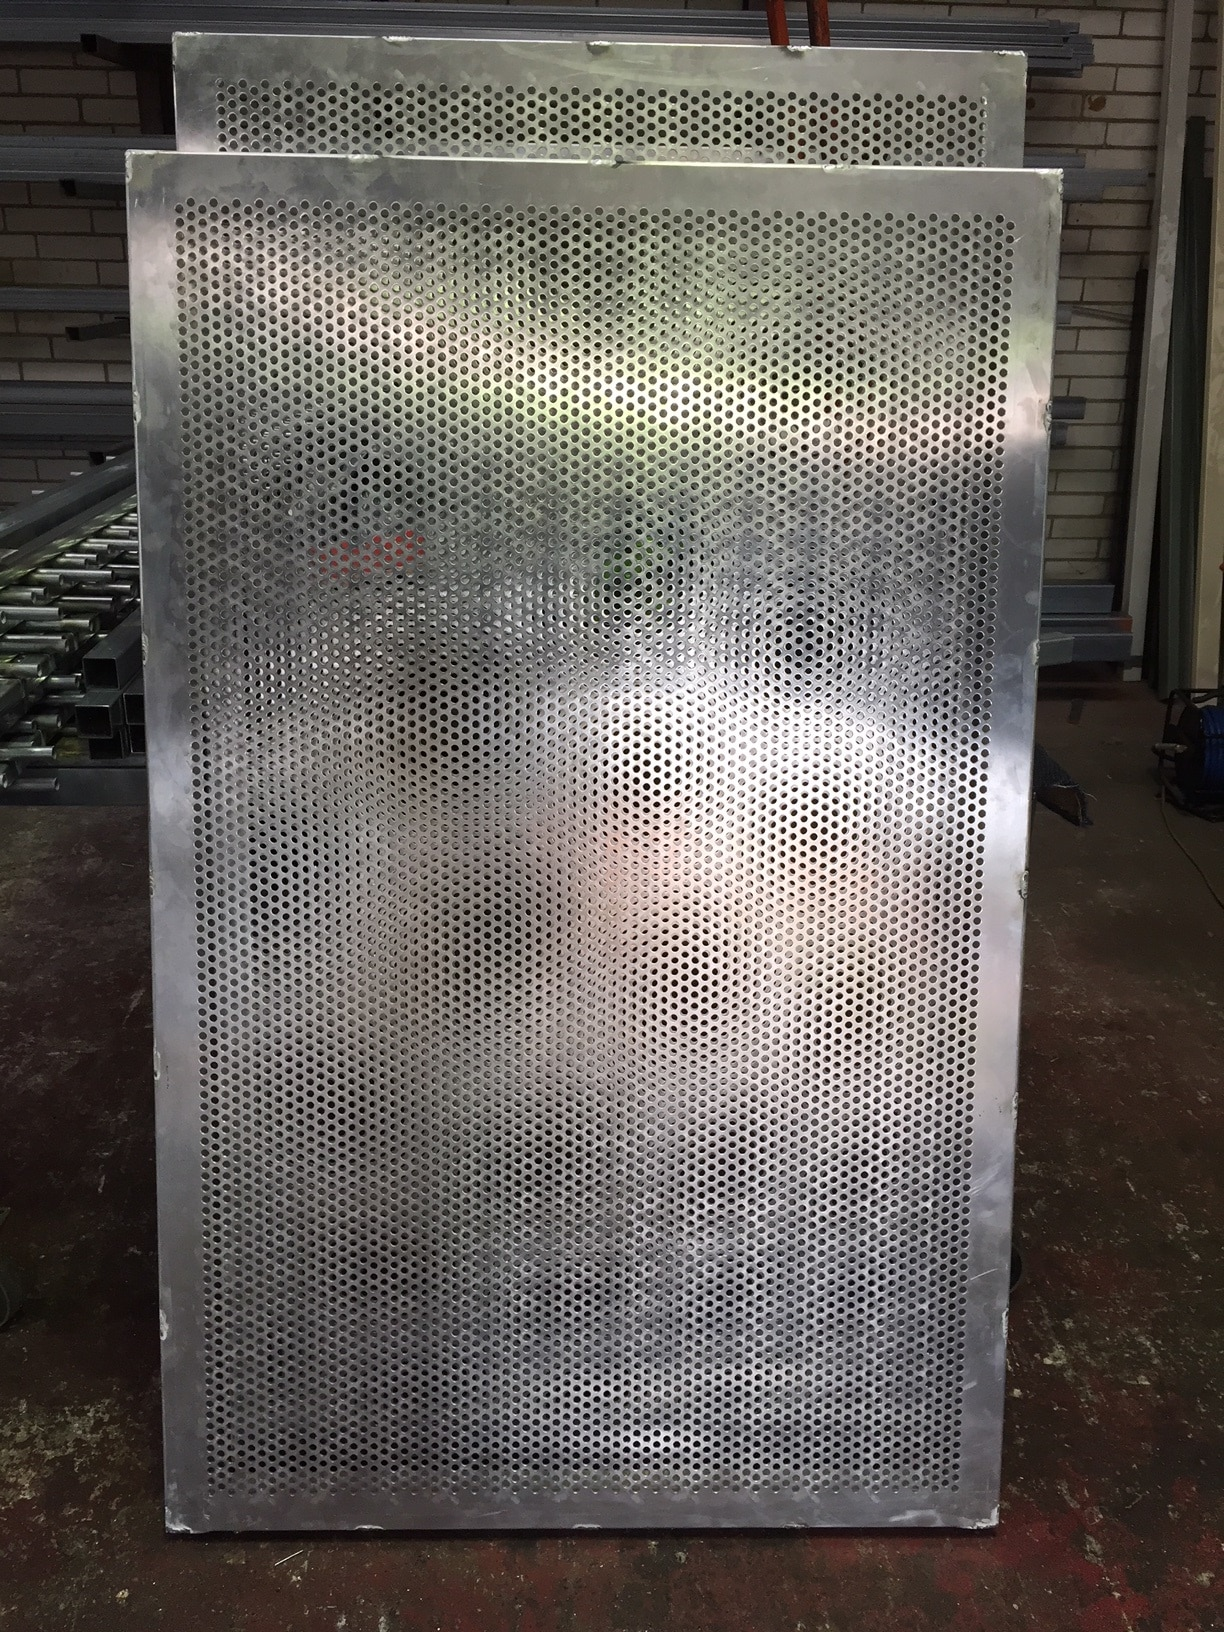 Standard Punched Aluminium Sheeted Gate With 9mm Diameter Holes 46% Permeability